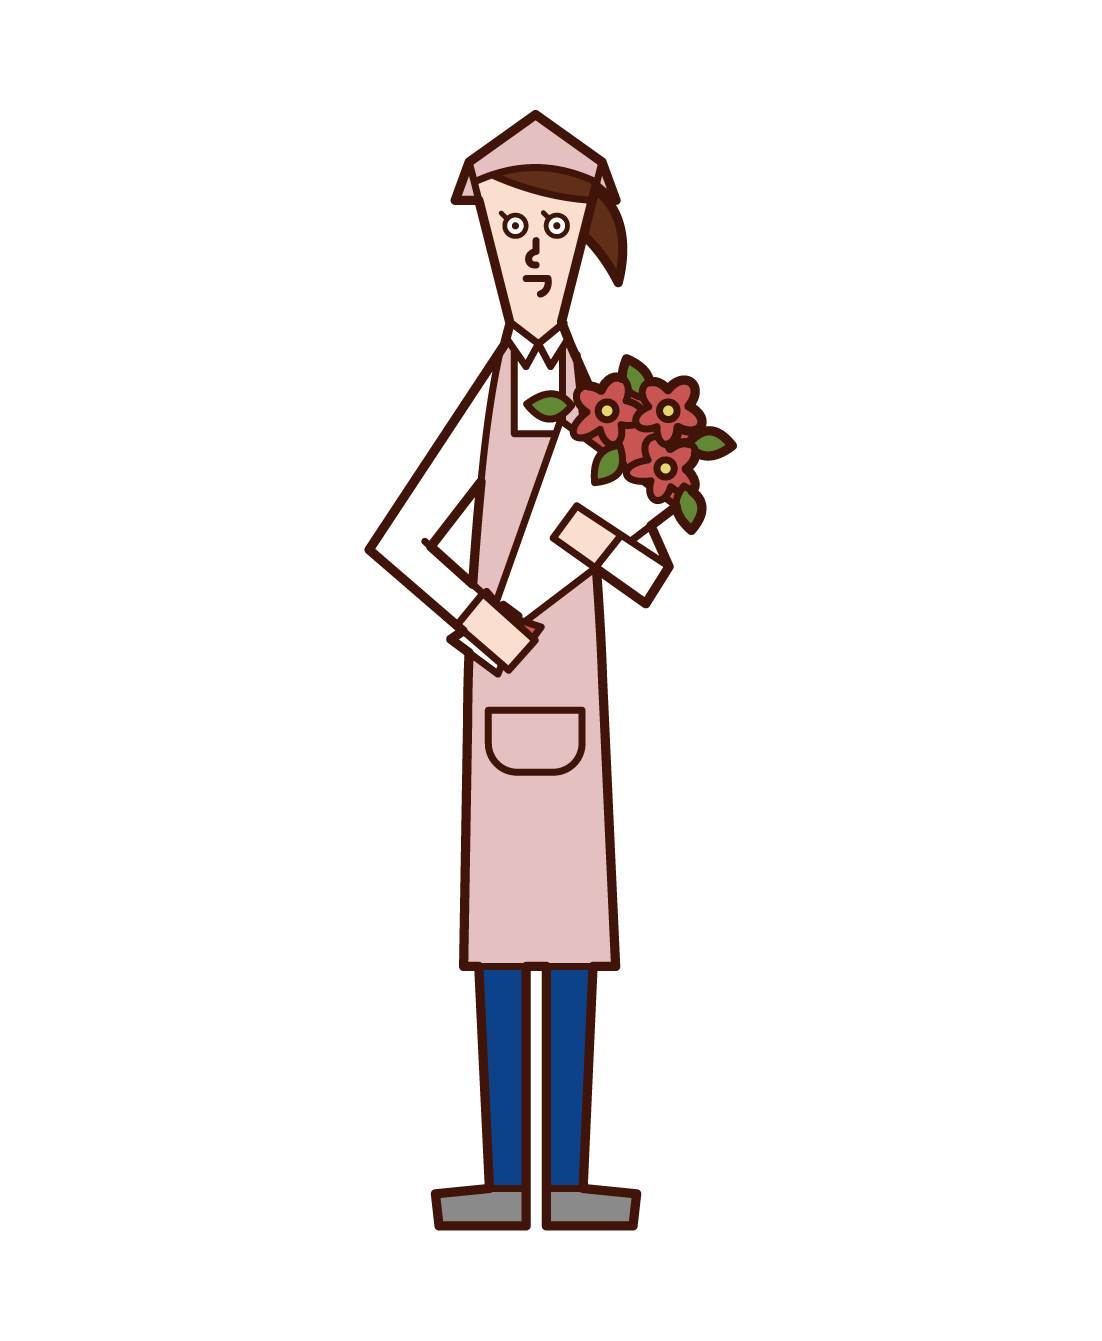 Illustration of a florist clerk (woman)